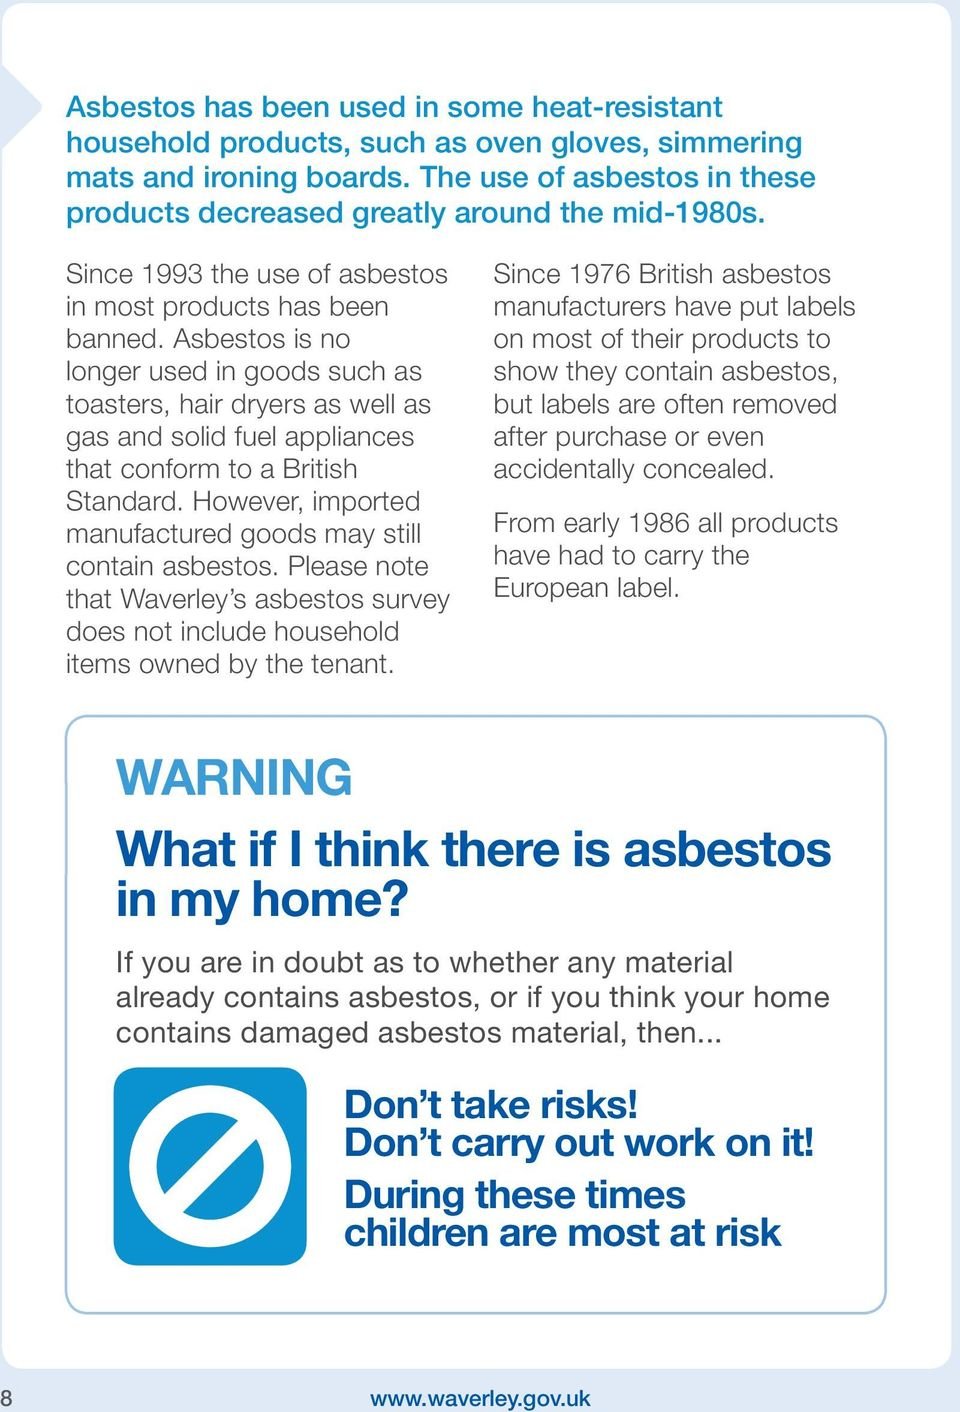 Asbestos is no longer used in goods such as toasters, hair dryers as well as gas and solid fuel appliances that conform to a British Standard.